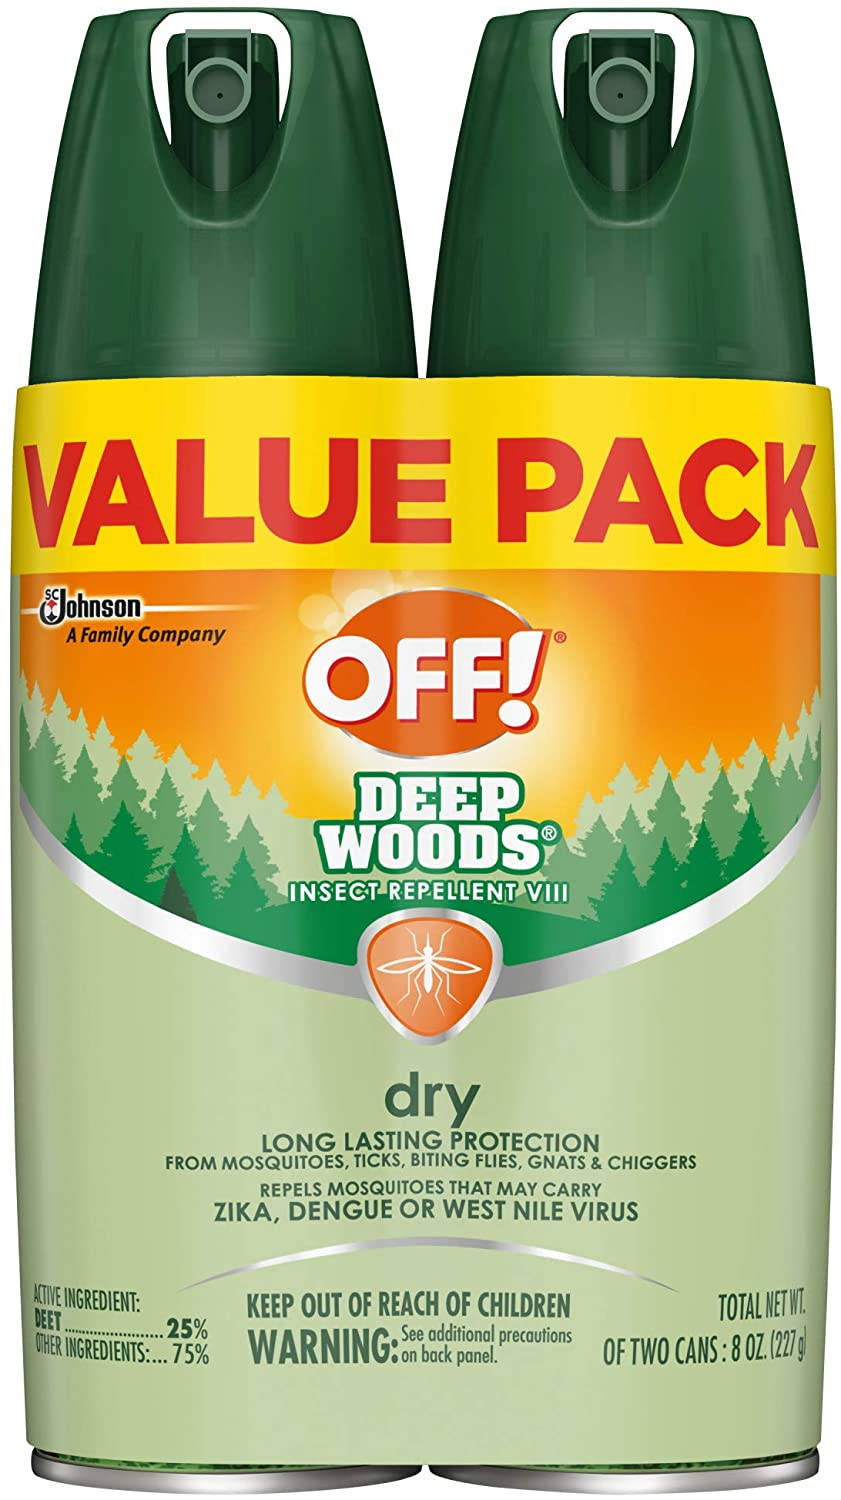 OFF Mosquito repellant with DEET